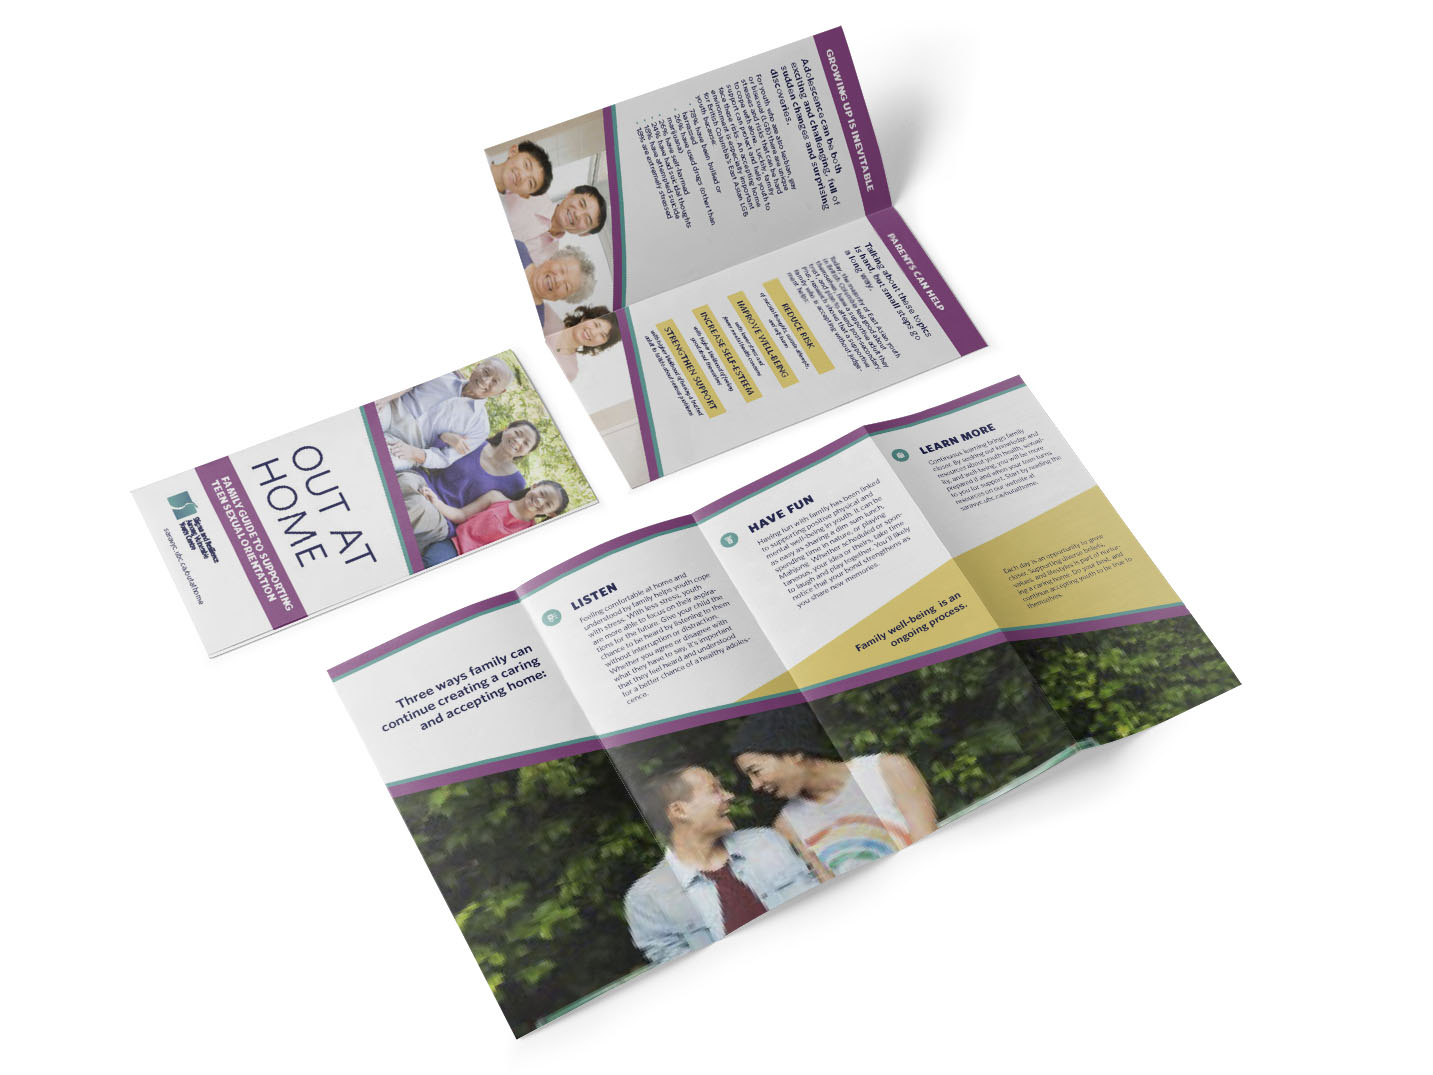 Mockup of the Out at Home quad-fold brochure front cover, inside flaps, and inside.